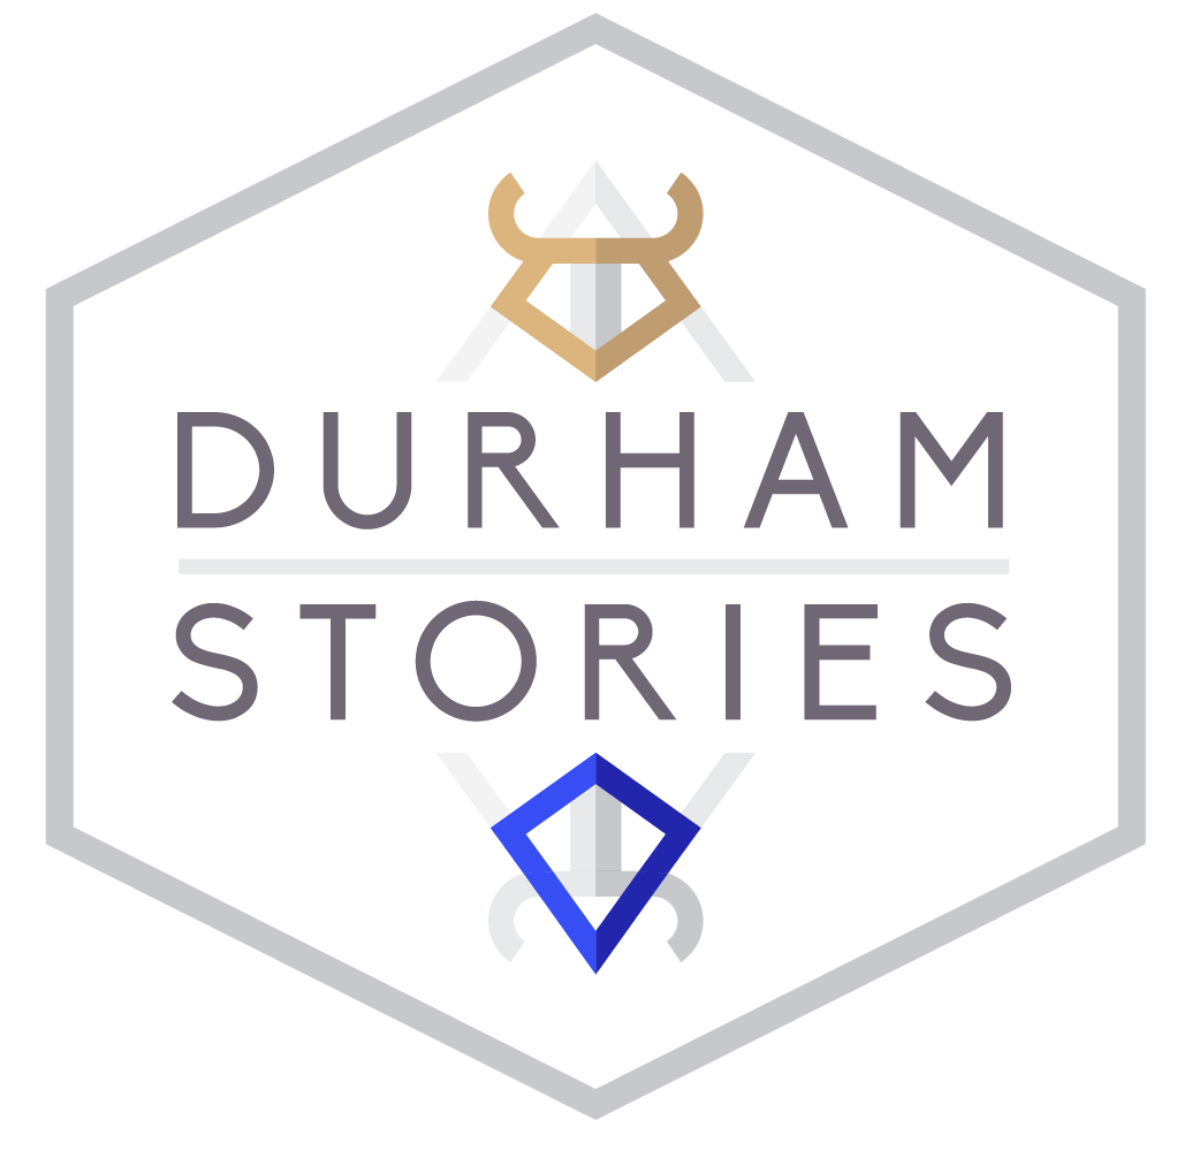 Durham Stories